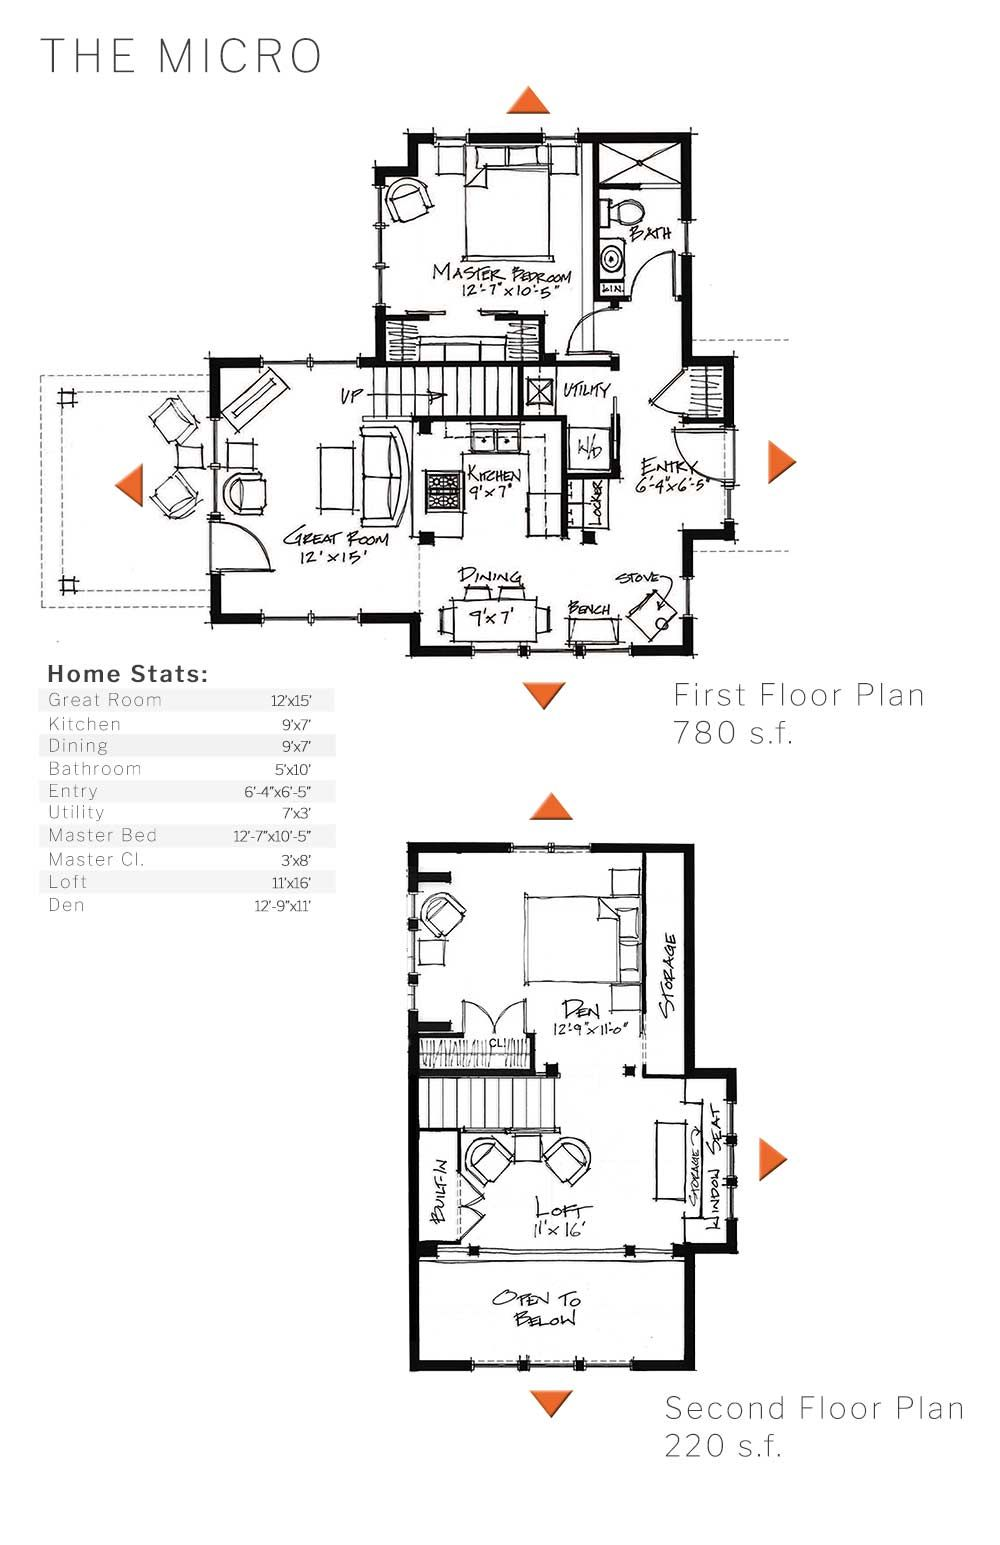 Layout And Dimensions Of Our Micro Home Design